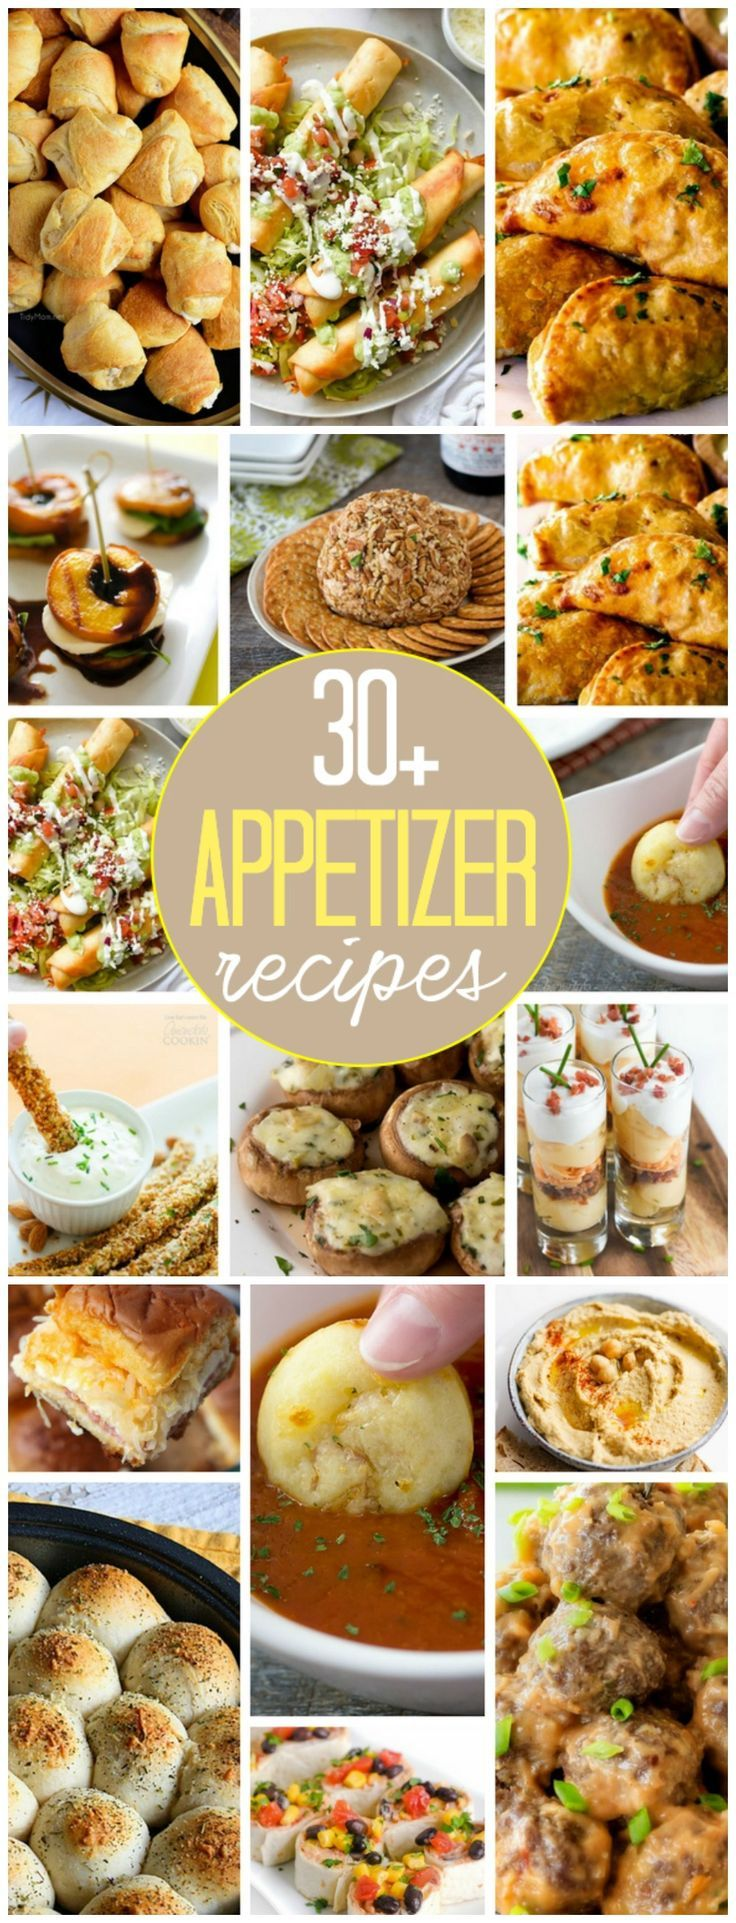 Appetizers are great whether you're greeting a crowd or just having a few friends over. We've gathered 30 Appetizer Recipes that everyone is sure to love!